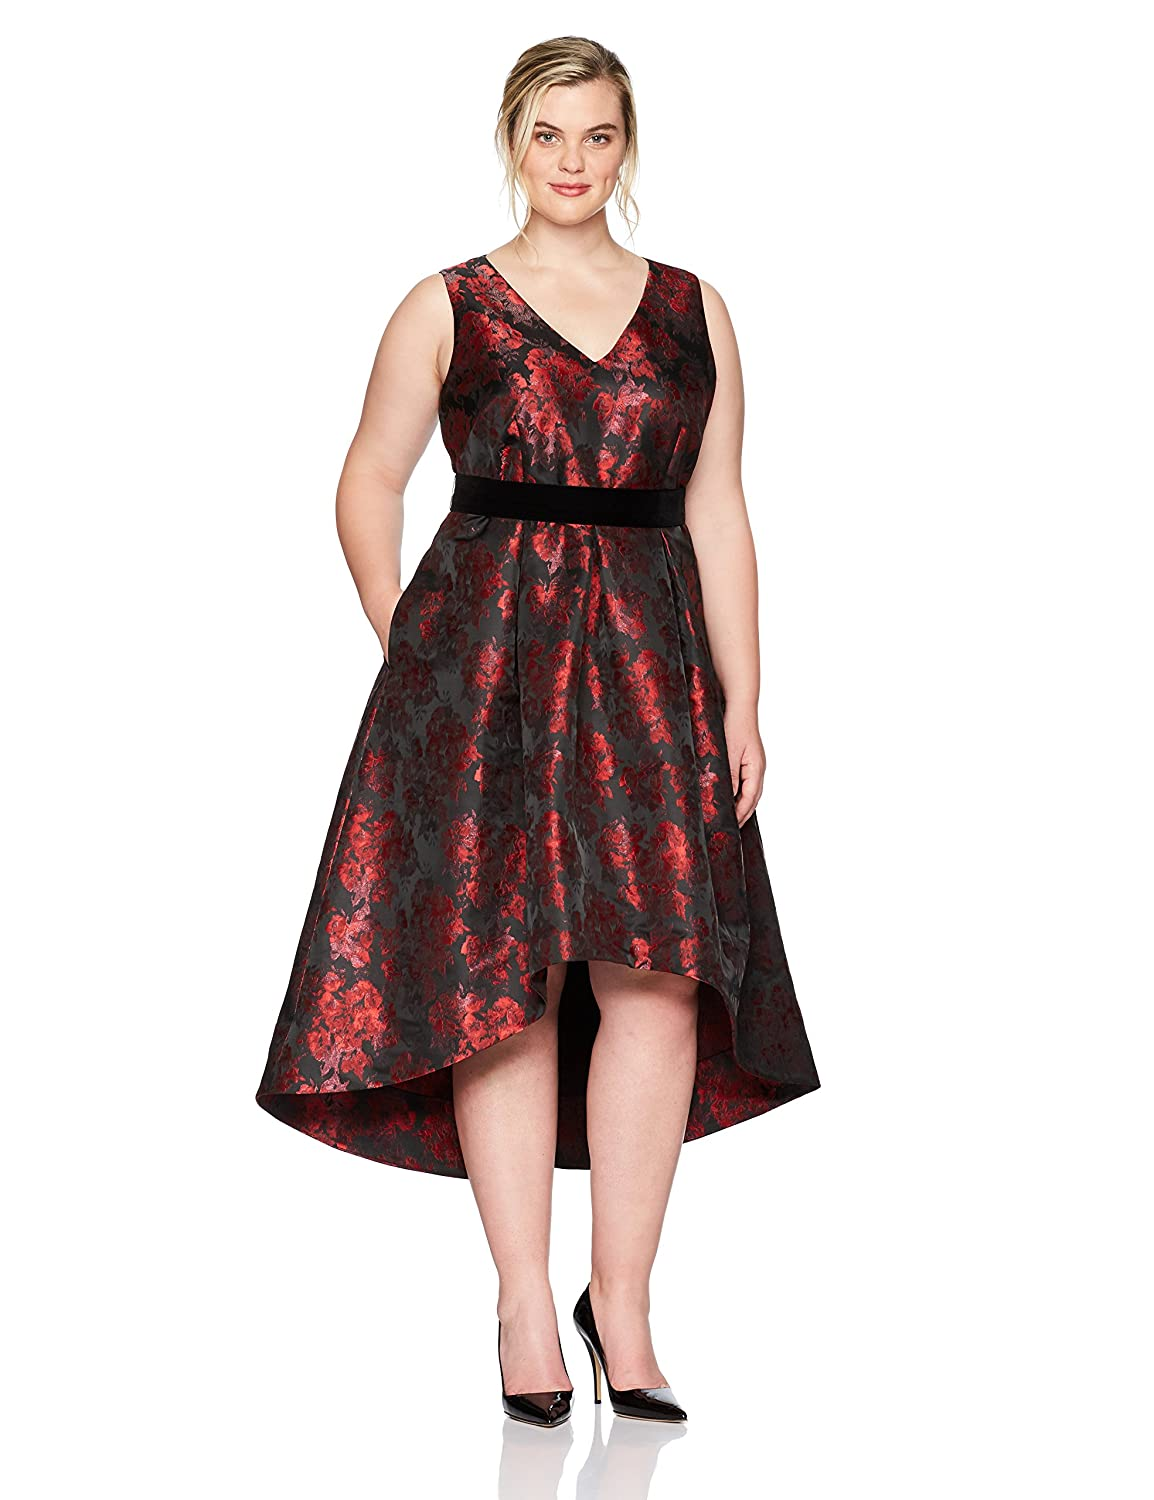 651cfeb163fdc Eliza J Women's Plus Size Floral Fit and Flare Dress